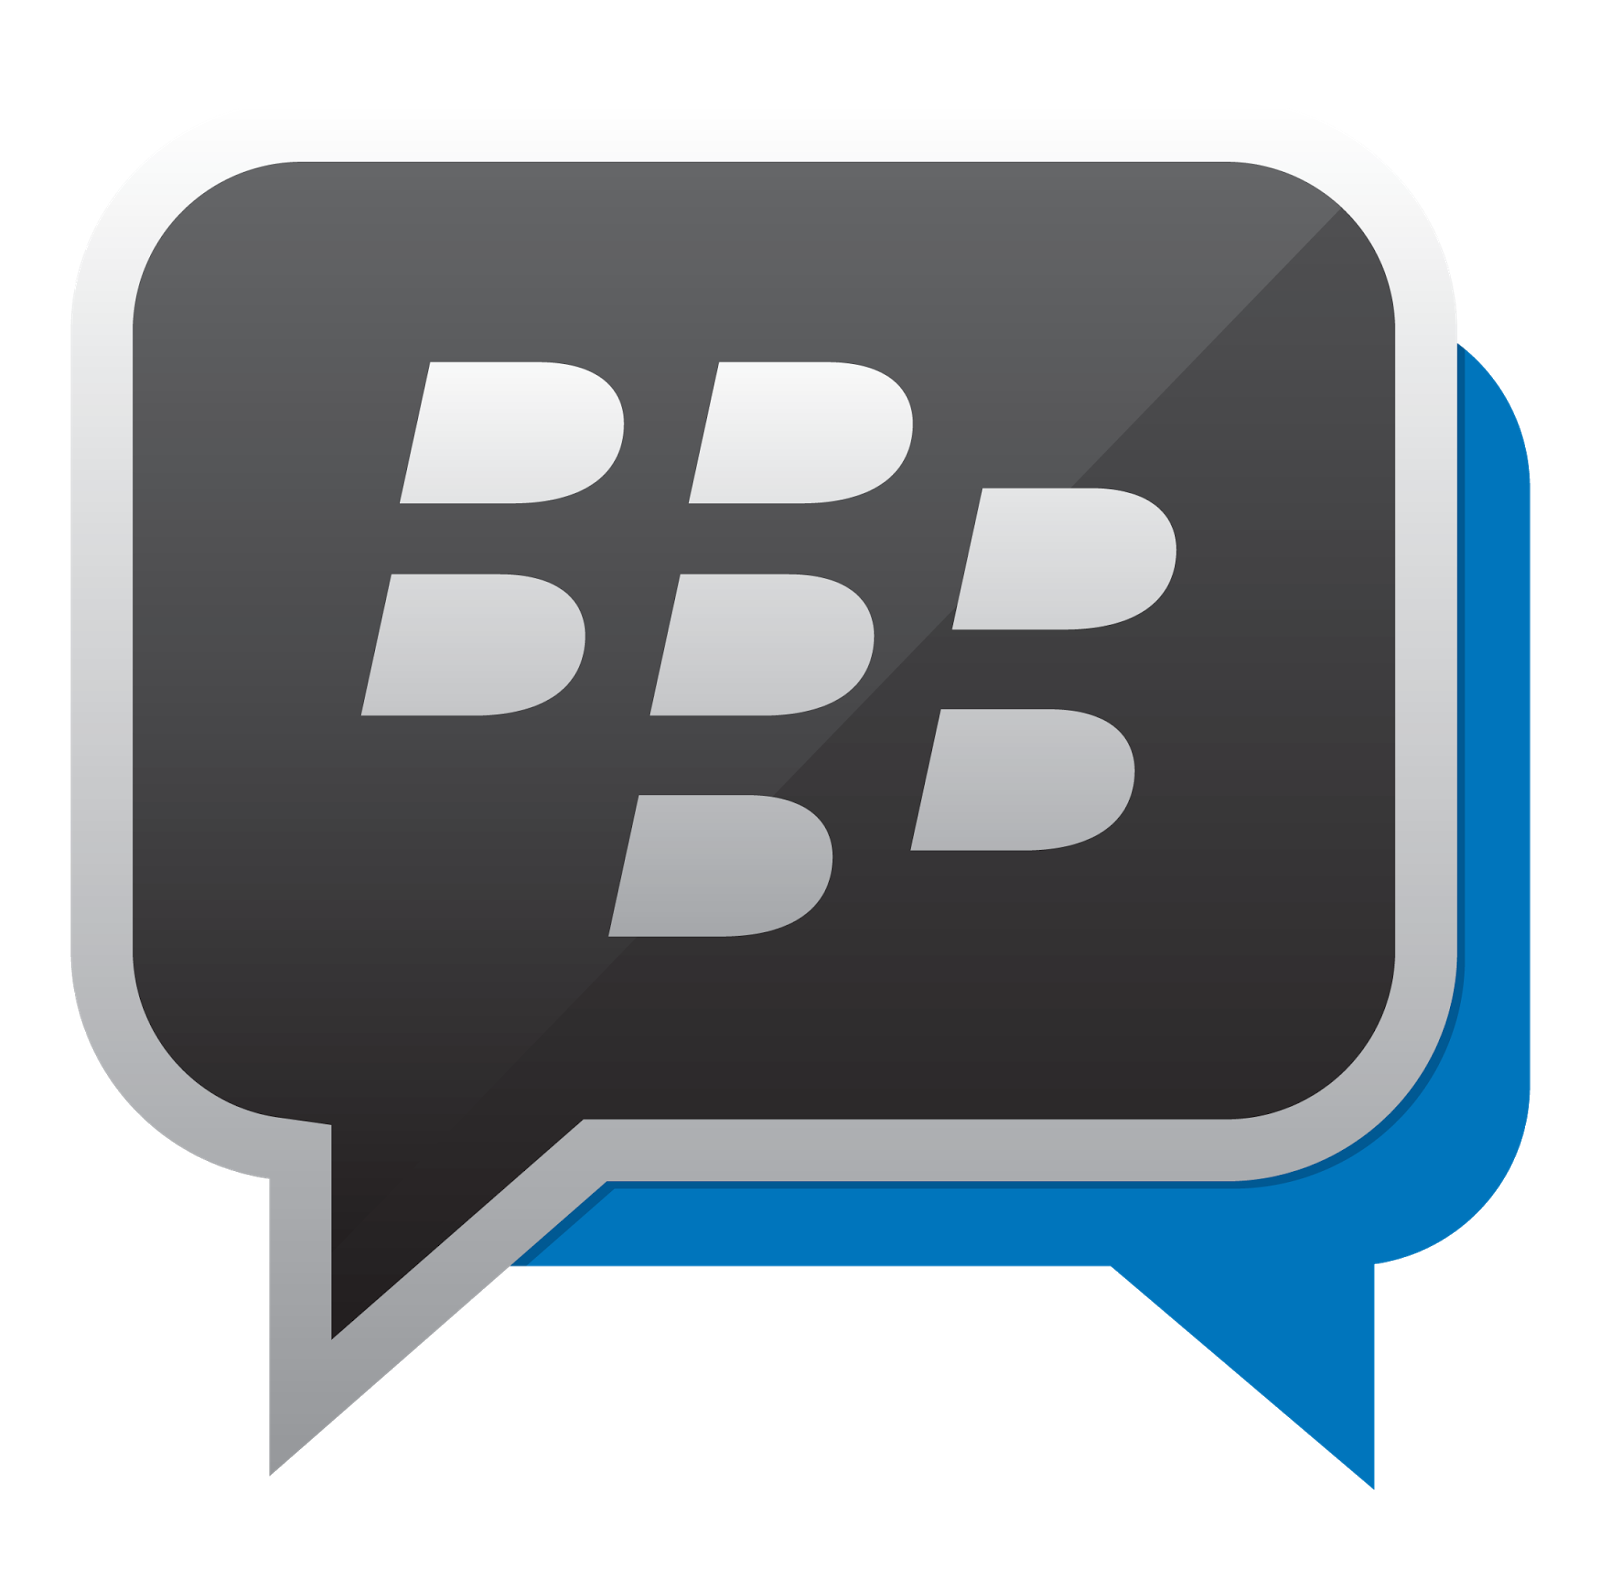 Png to ico download. Bbm icons vector free